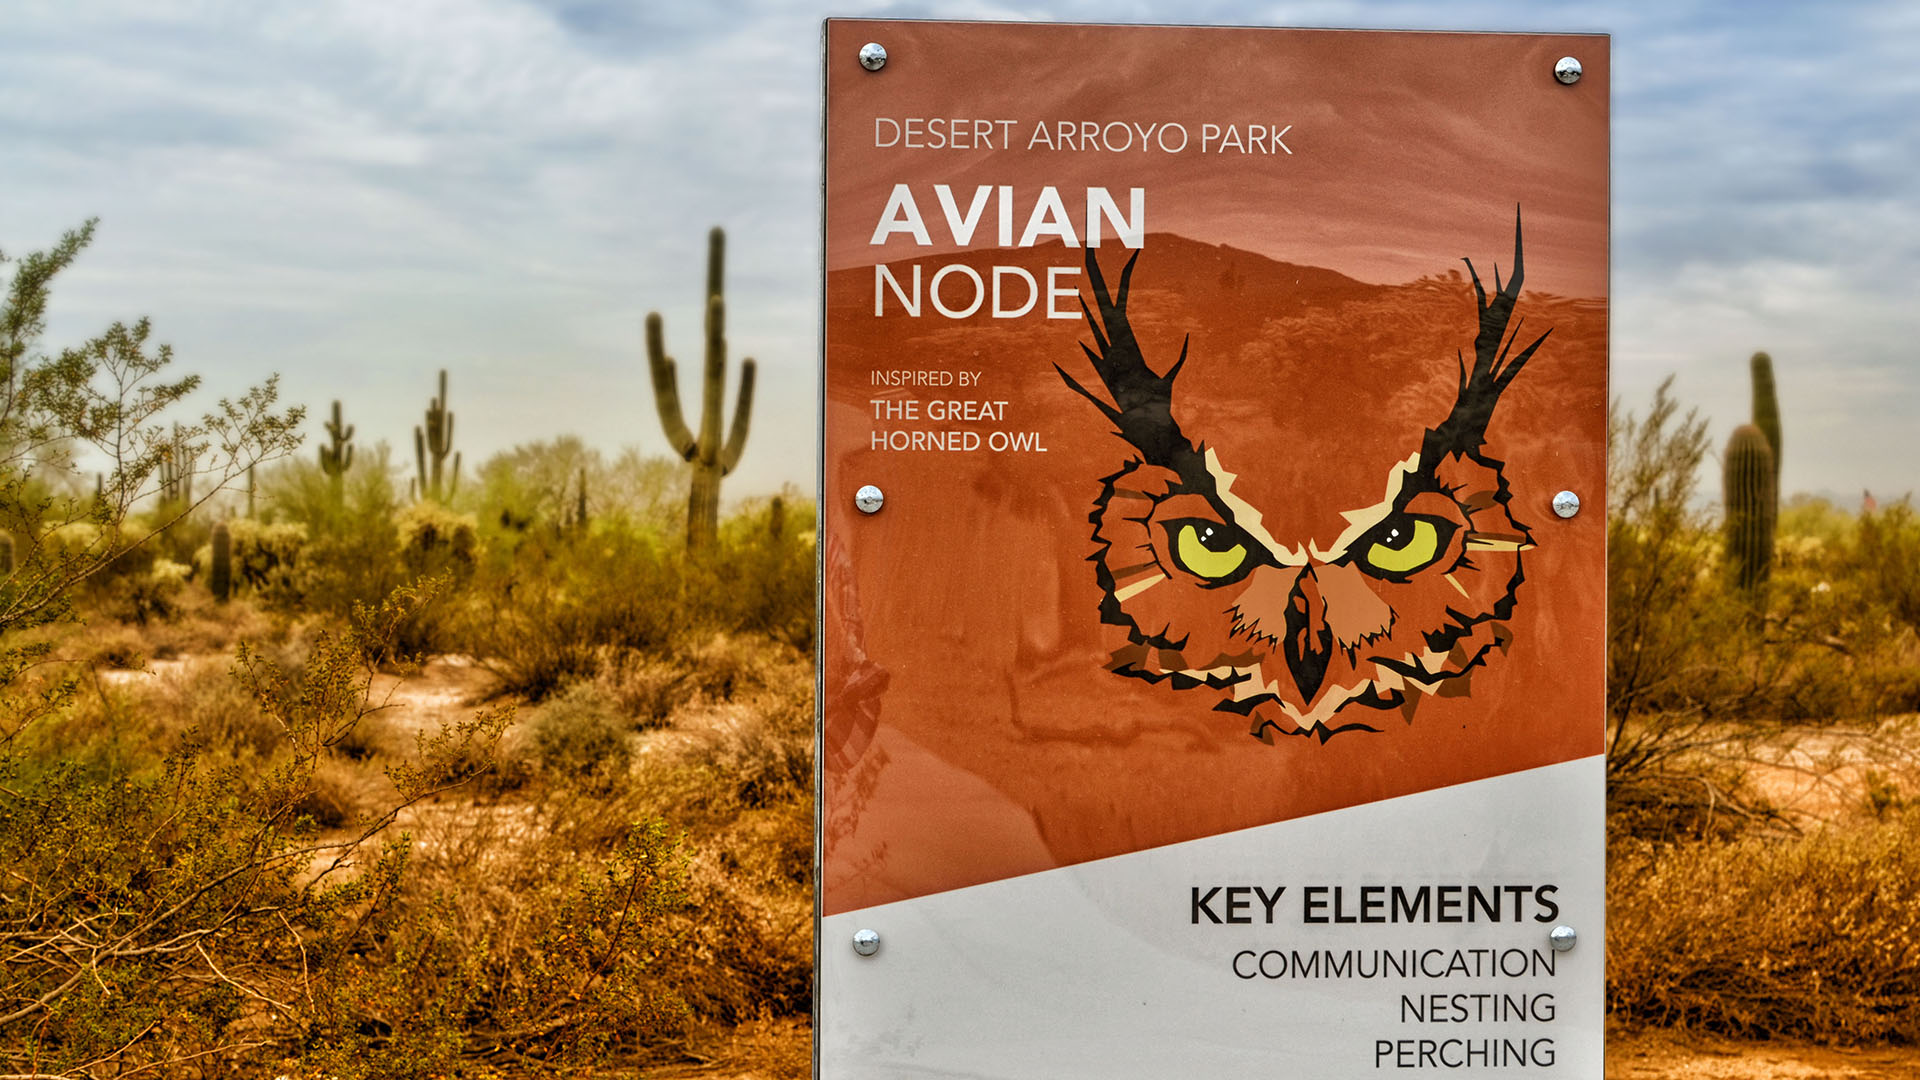 Educational sign about the Avian Node